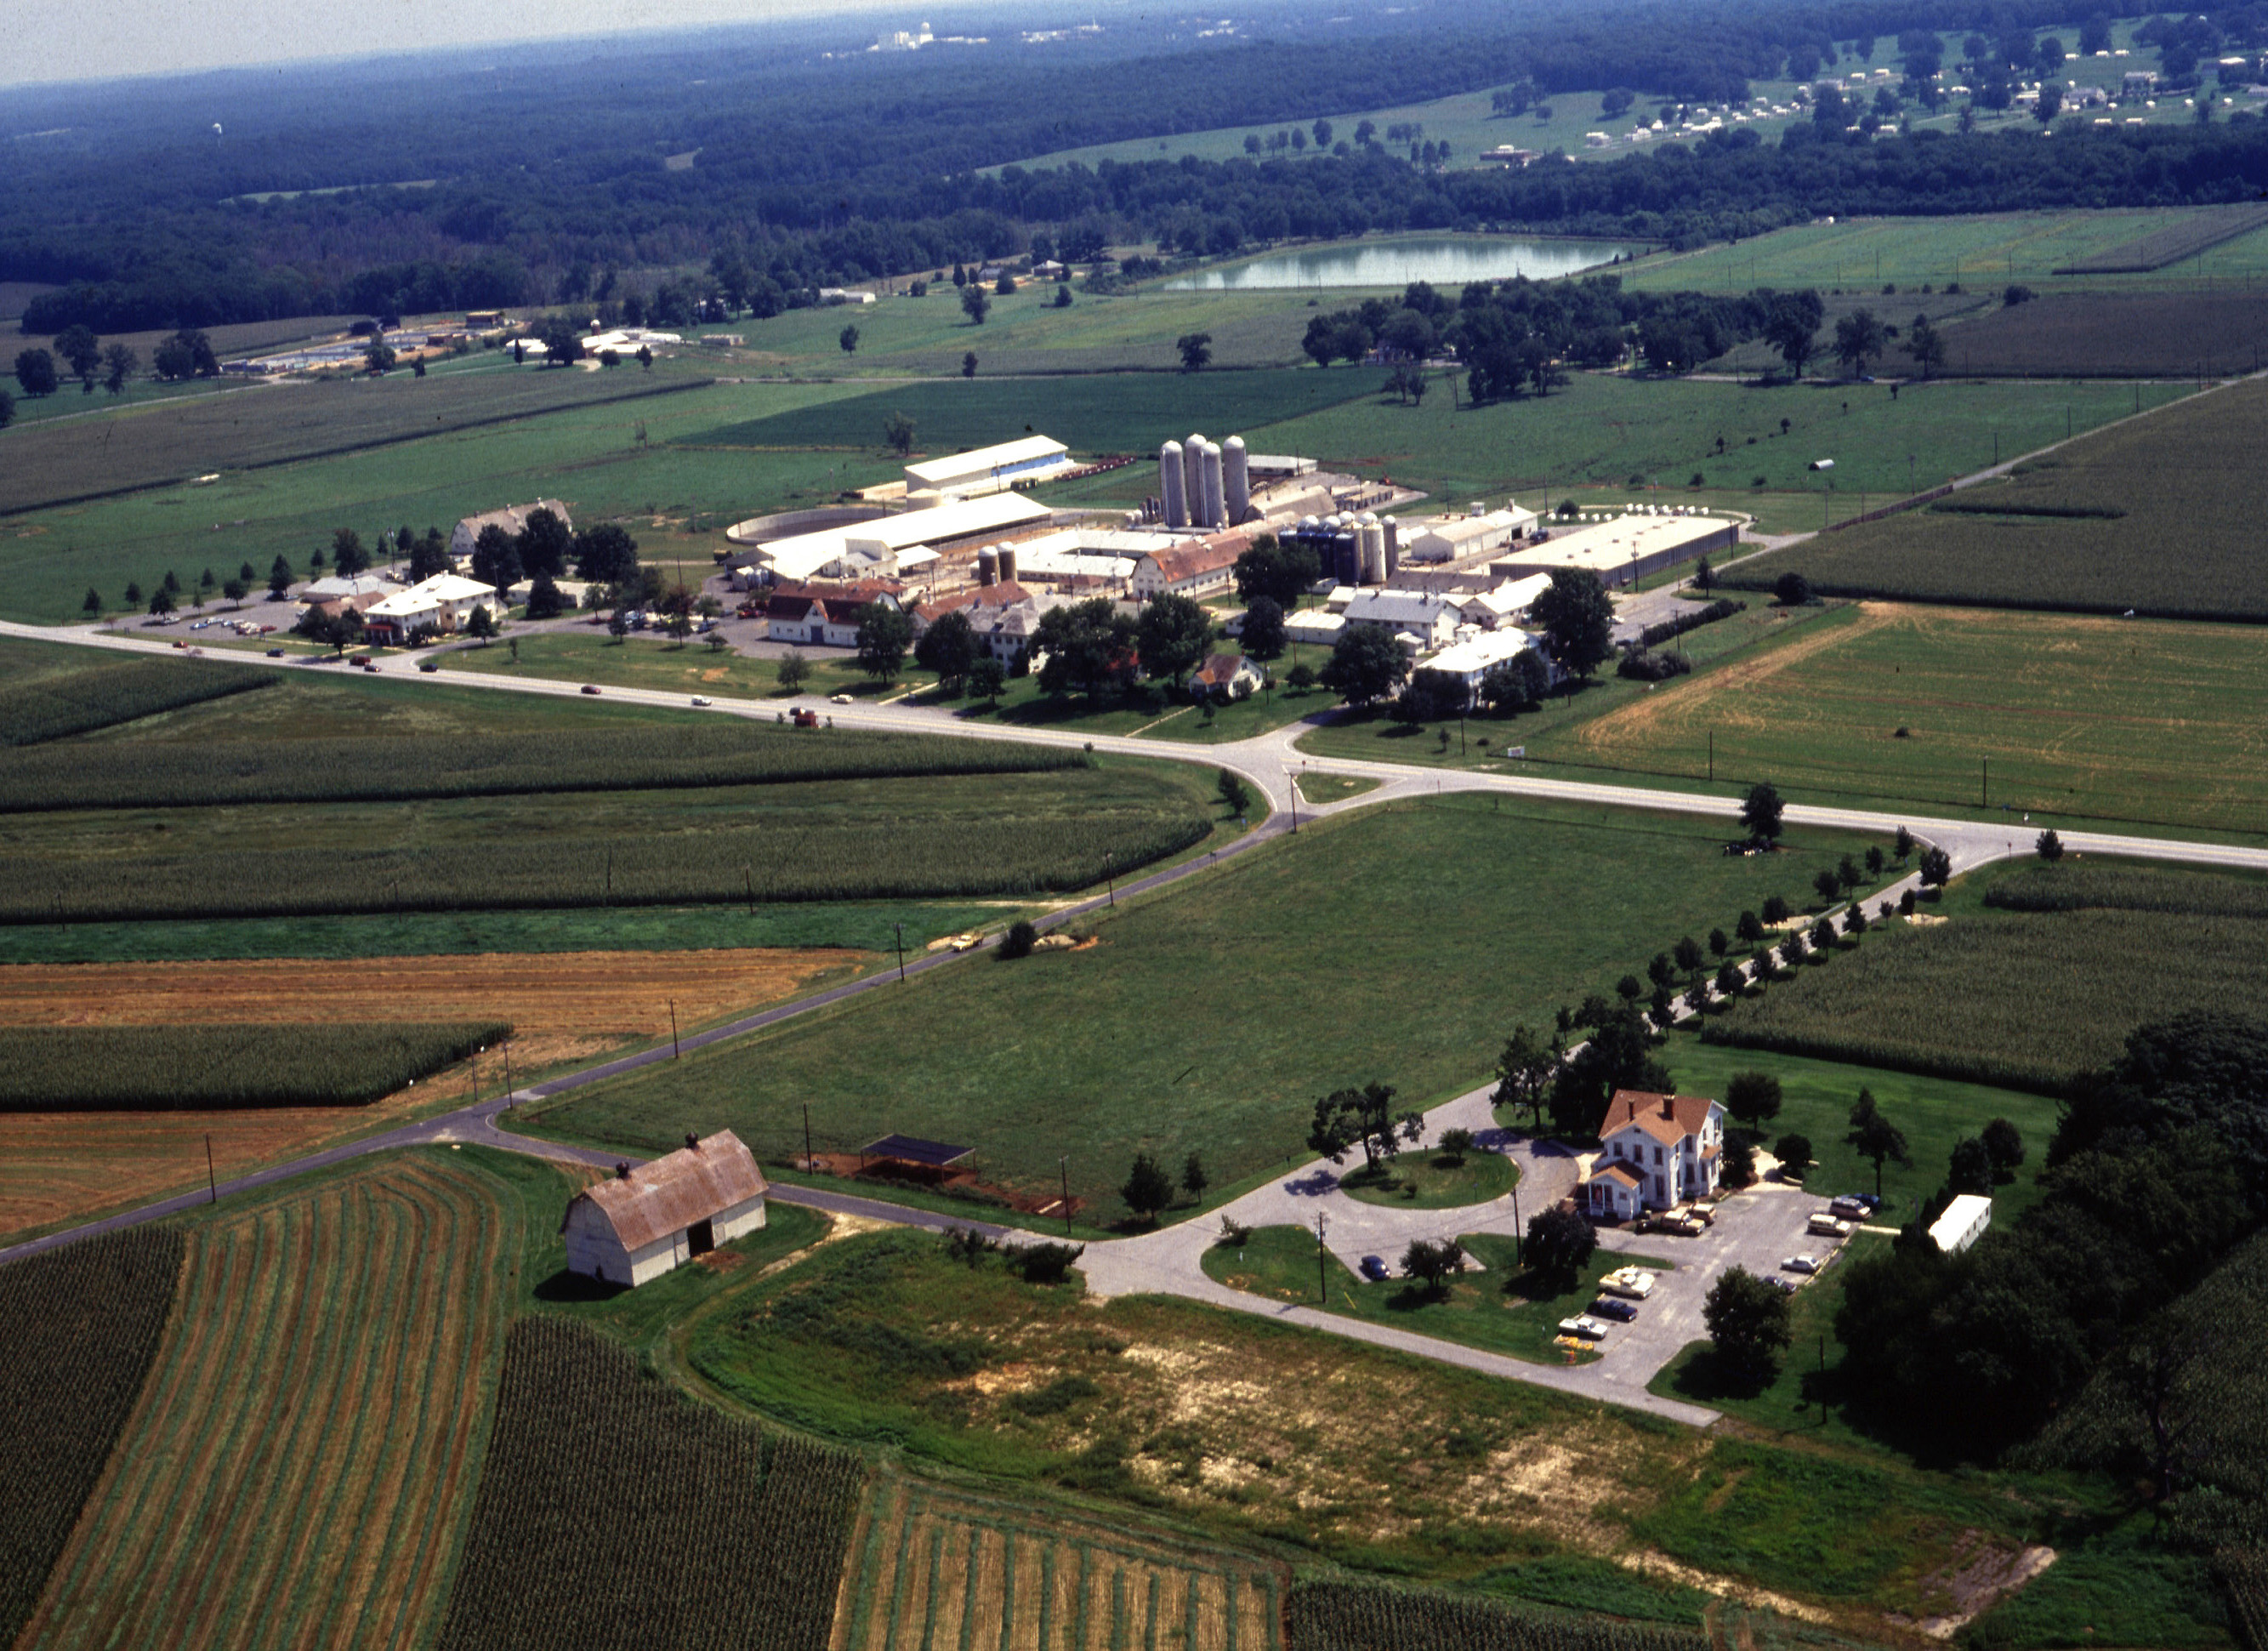 Beltsville_Agricultural_Research_Center_grounds.jpg